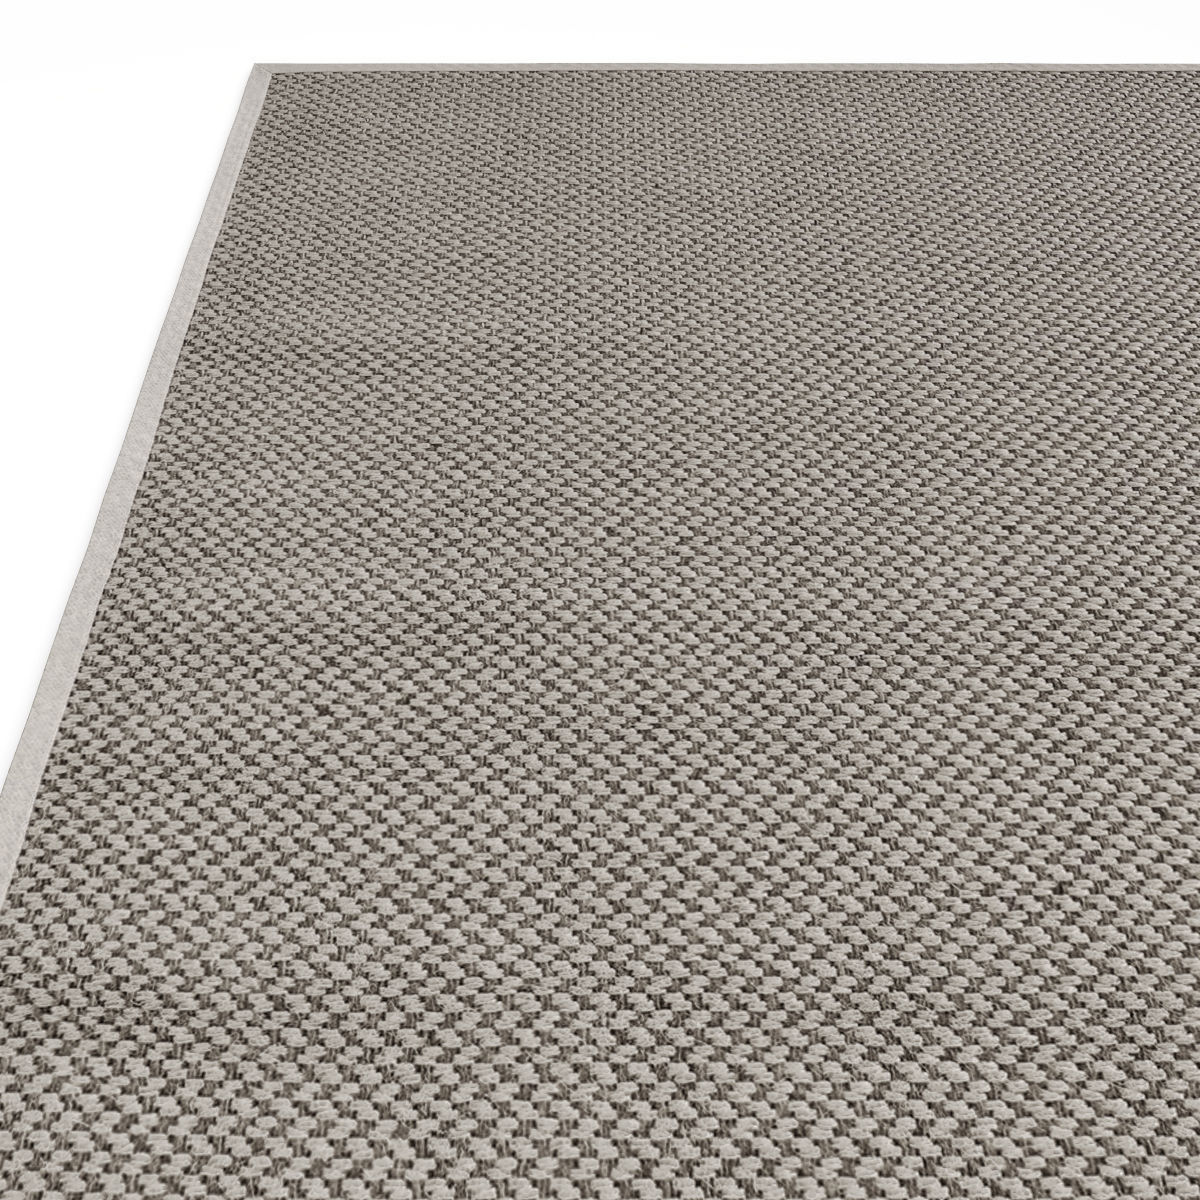 latex non sisal slip il com environment dp mats amazon area stain rug usa resistant collection in sorrento durable friendly handmade mat naturalarearugs backing